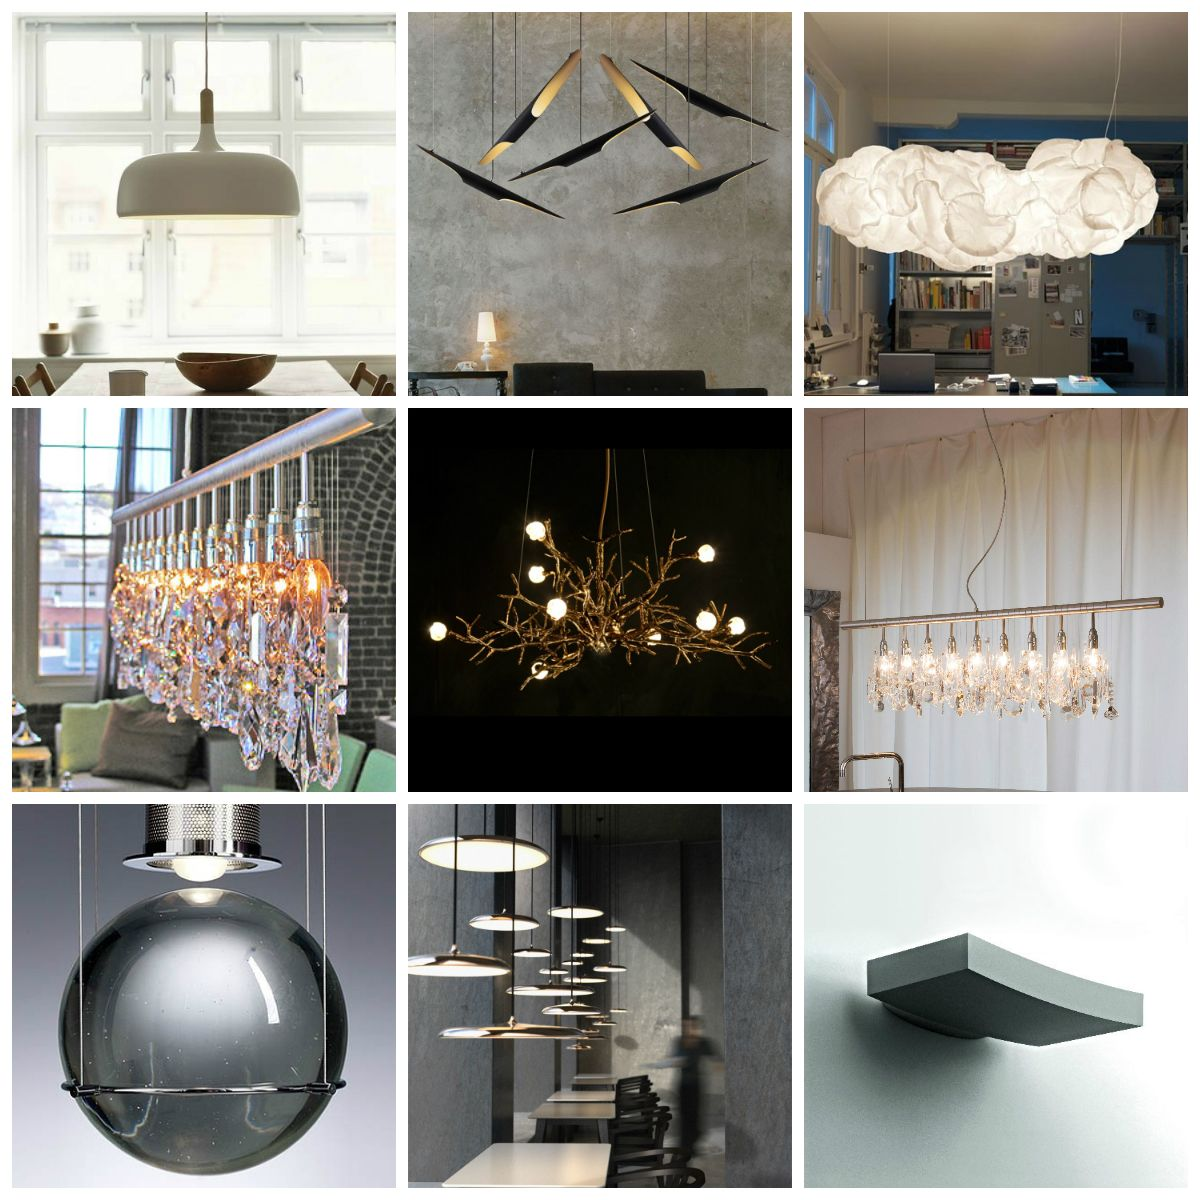 Heres top 10 most popular light fixtures of 2017 at interior deluxe 1 will be revealed tomorrow 2 acorn pendant northern lighting 3